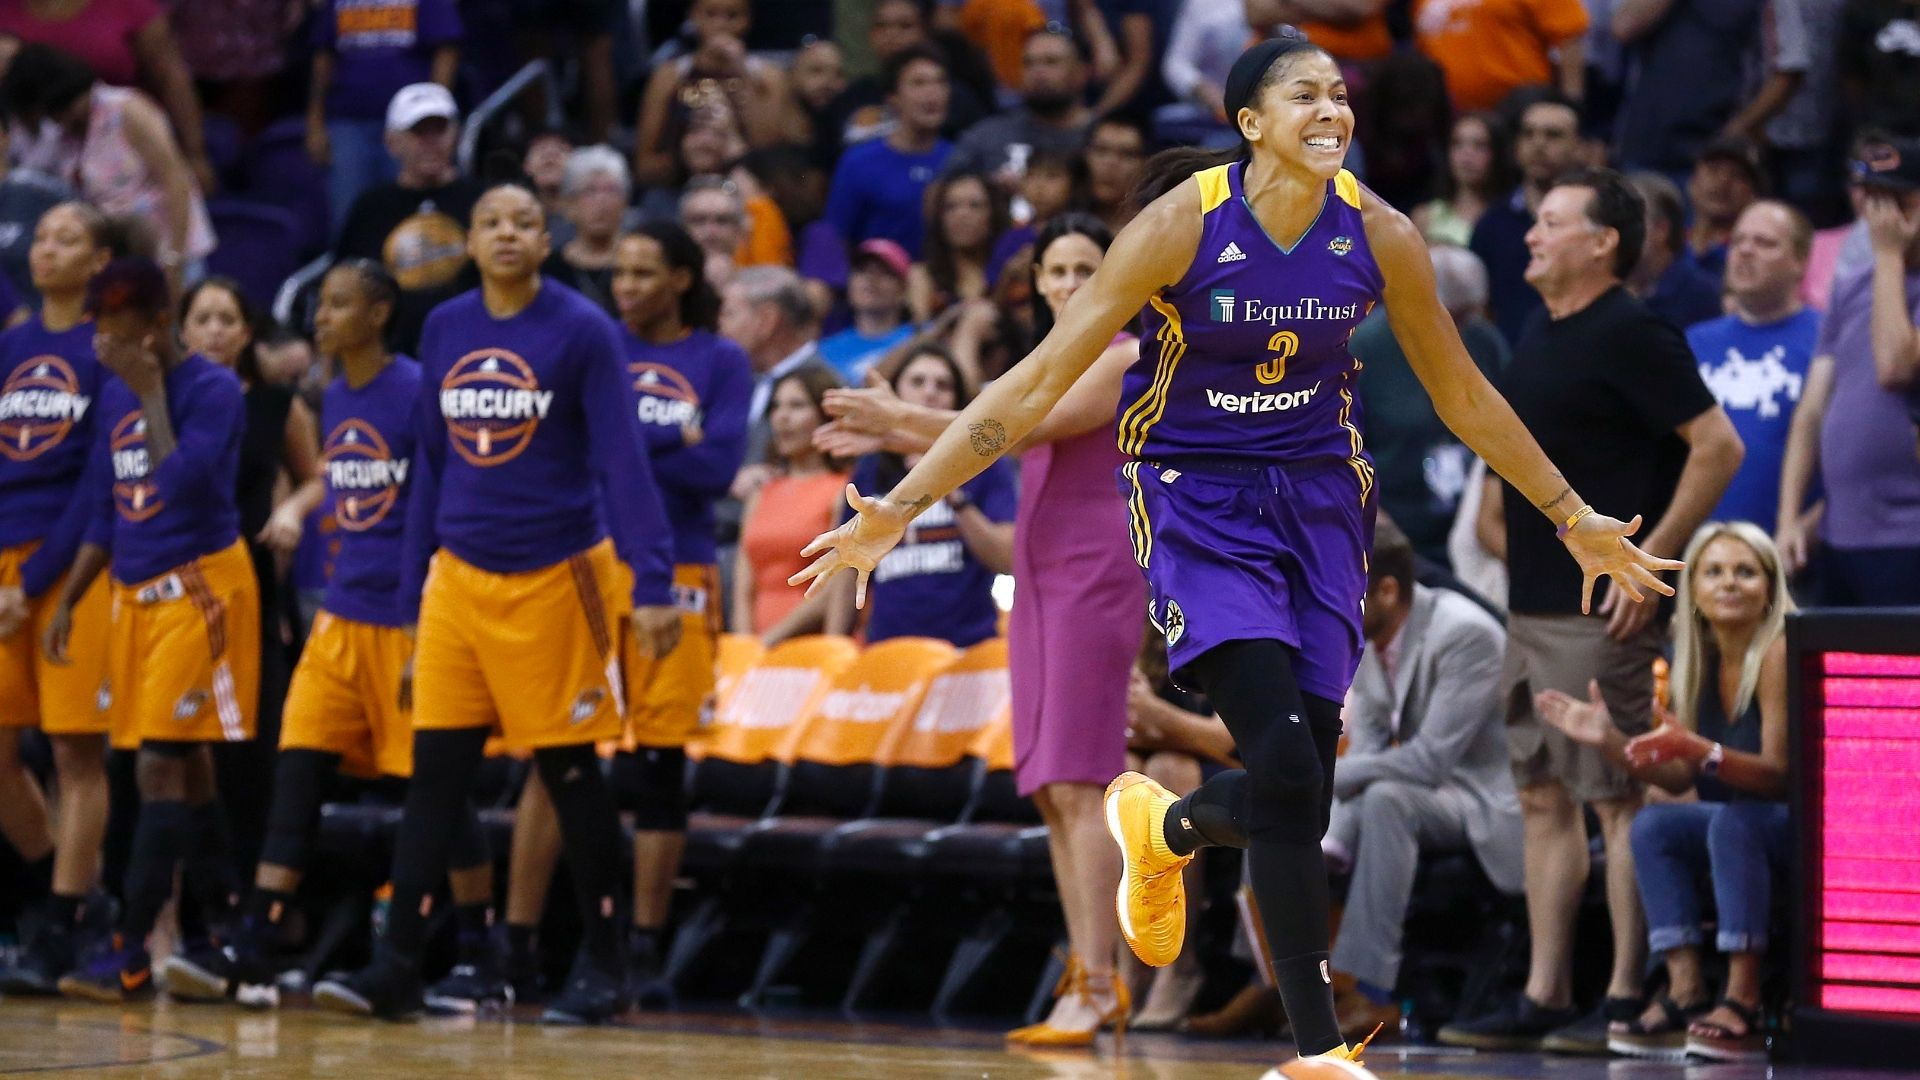 Sparks edge Mercury to cap three-game sweep